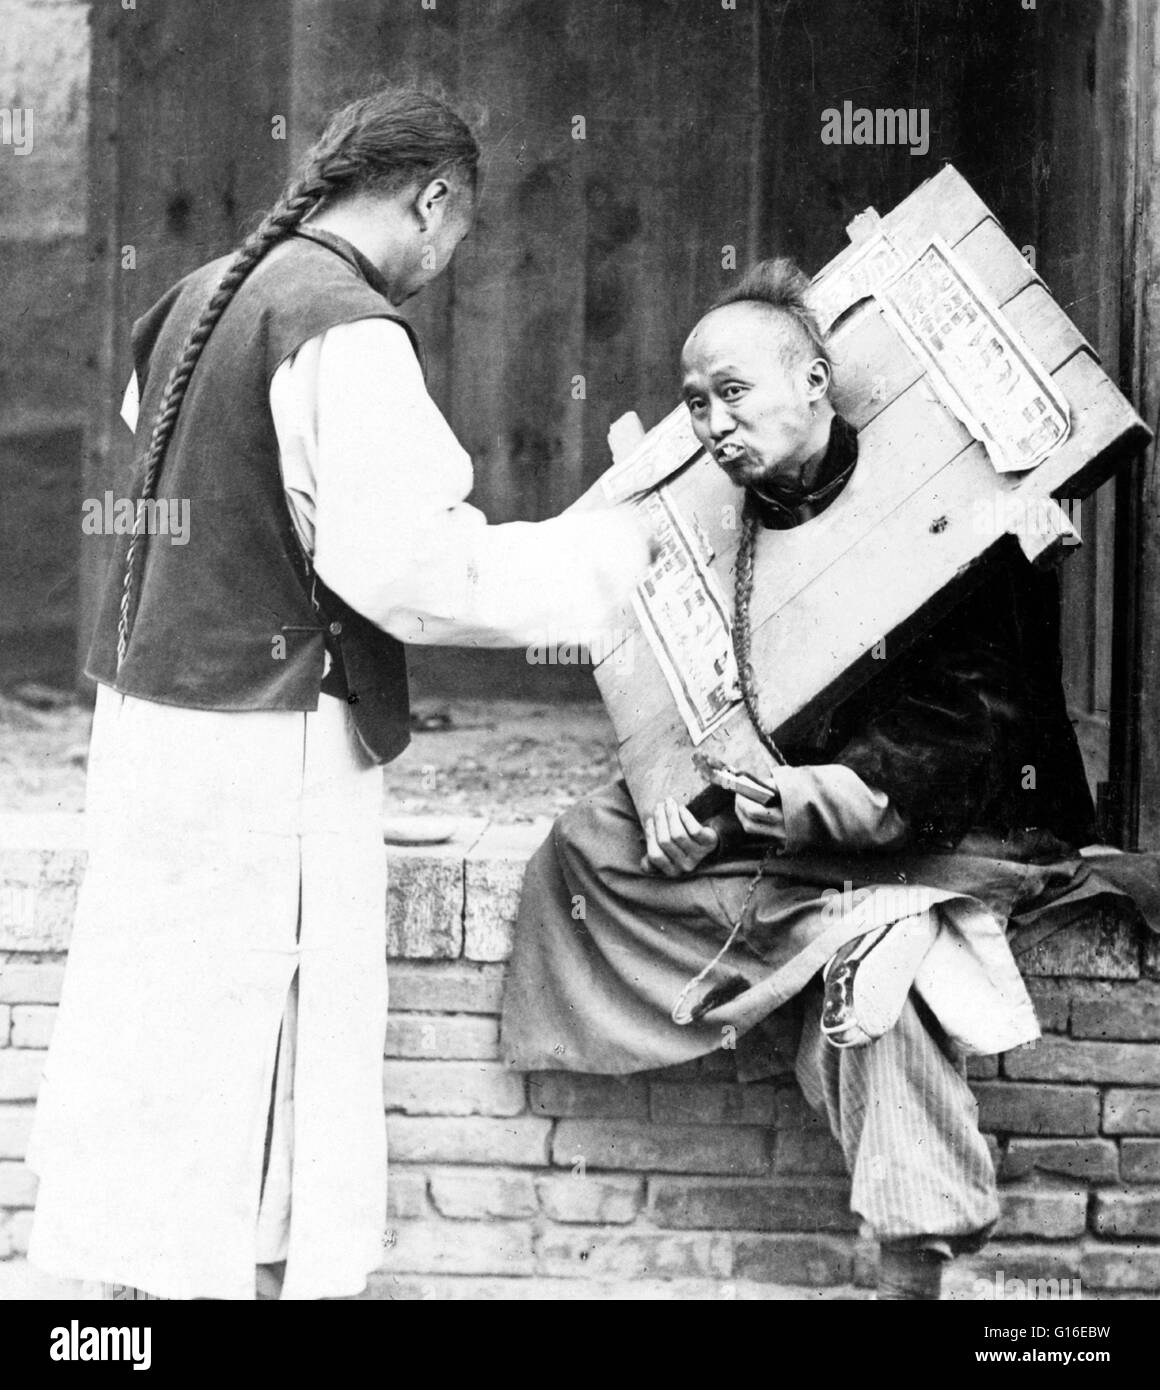 15 punishments and executions that were practiced in China in the XIX century